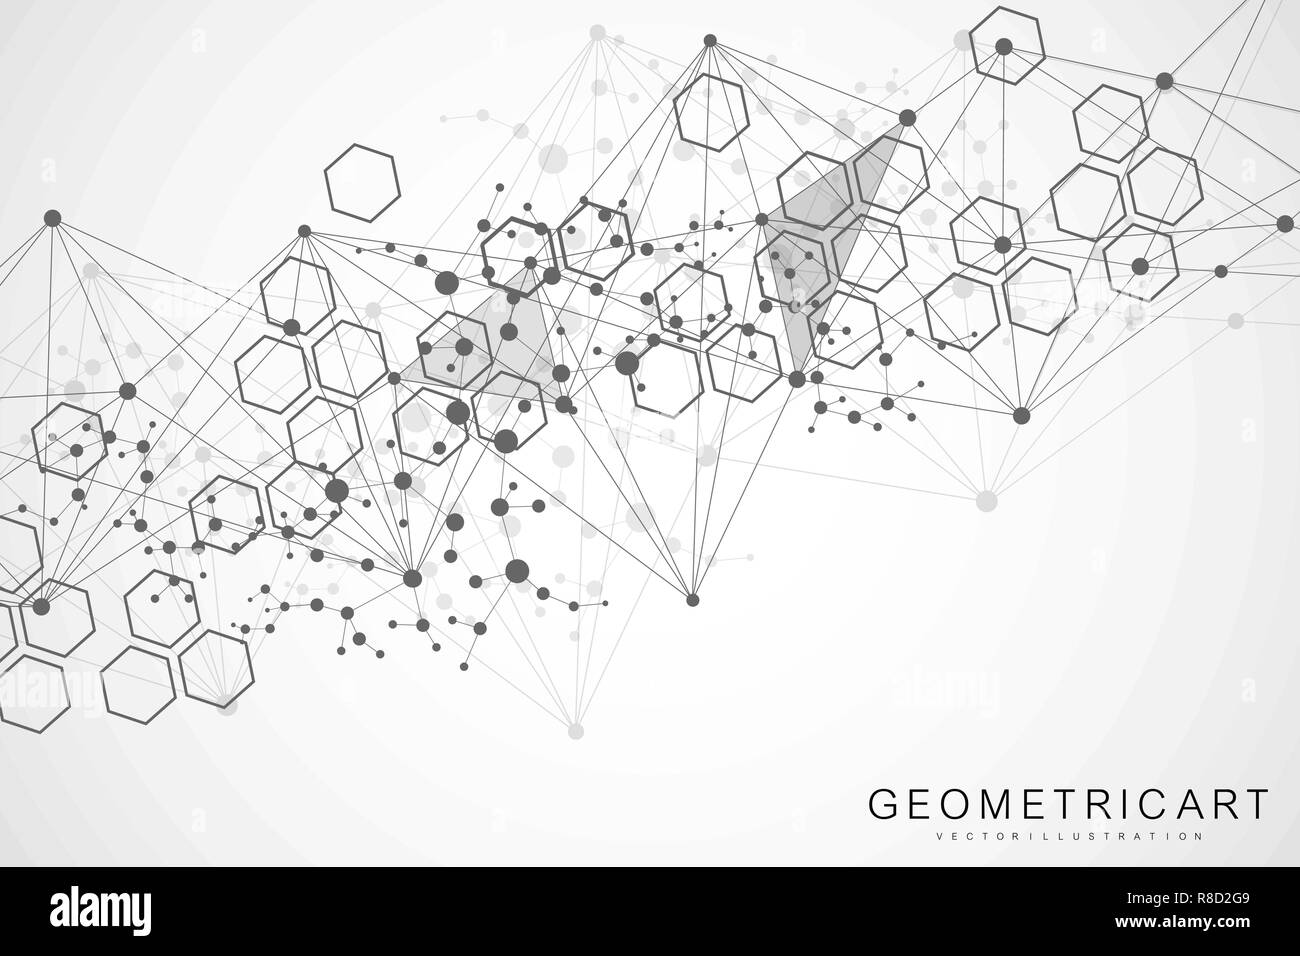 Hexagonal Abstract Background Big Data Visualization Global Network Connection Diagram Medical Technology Science Vector Illustration